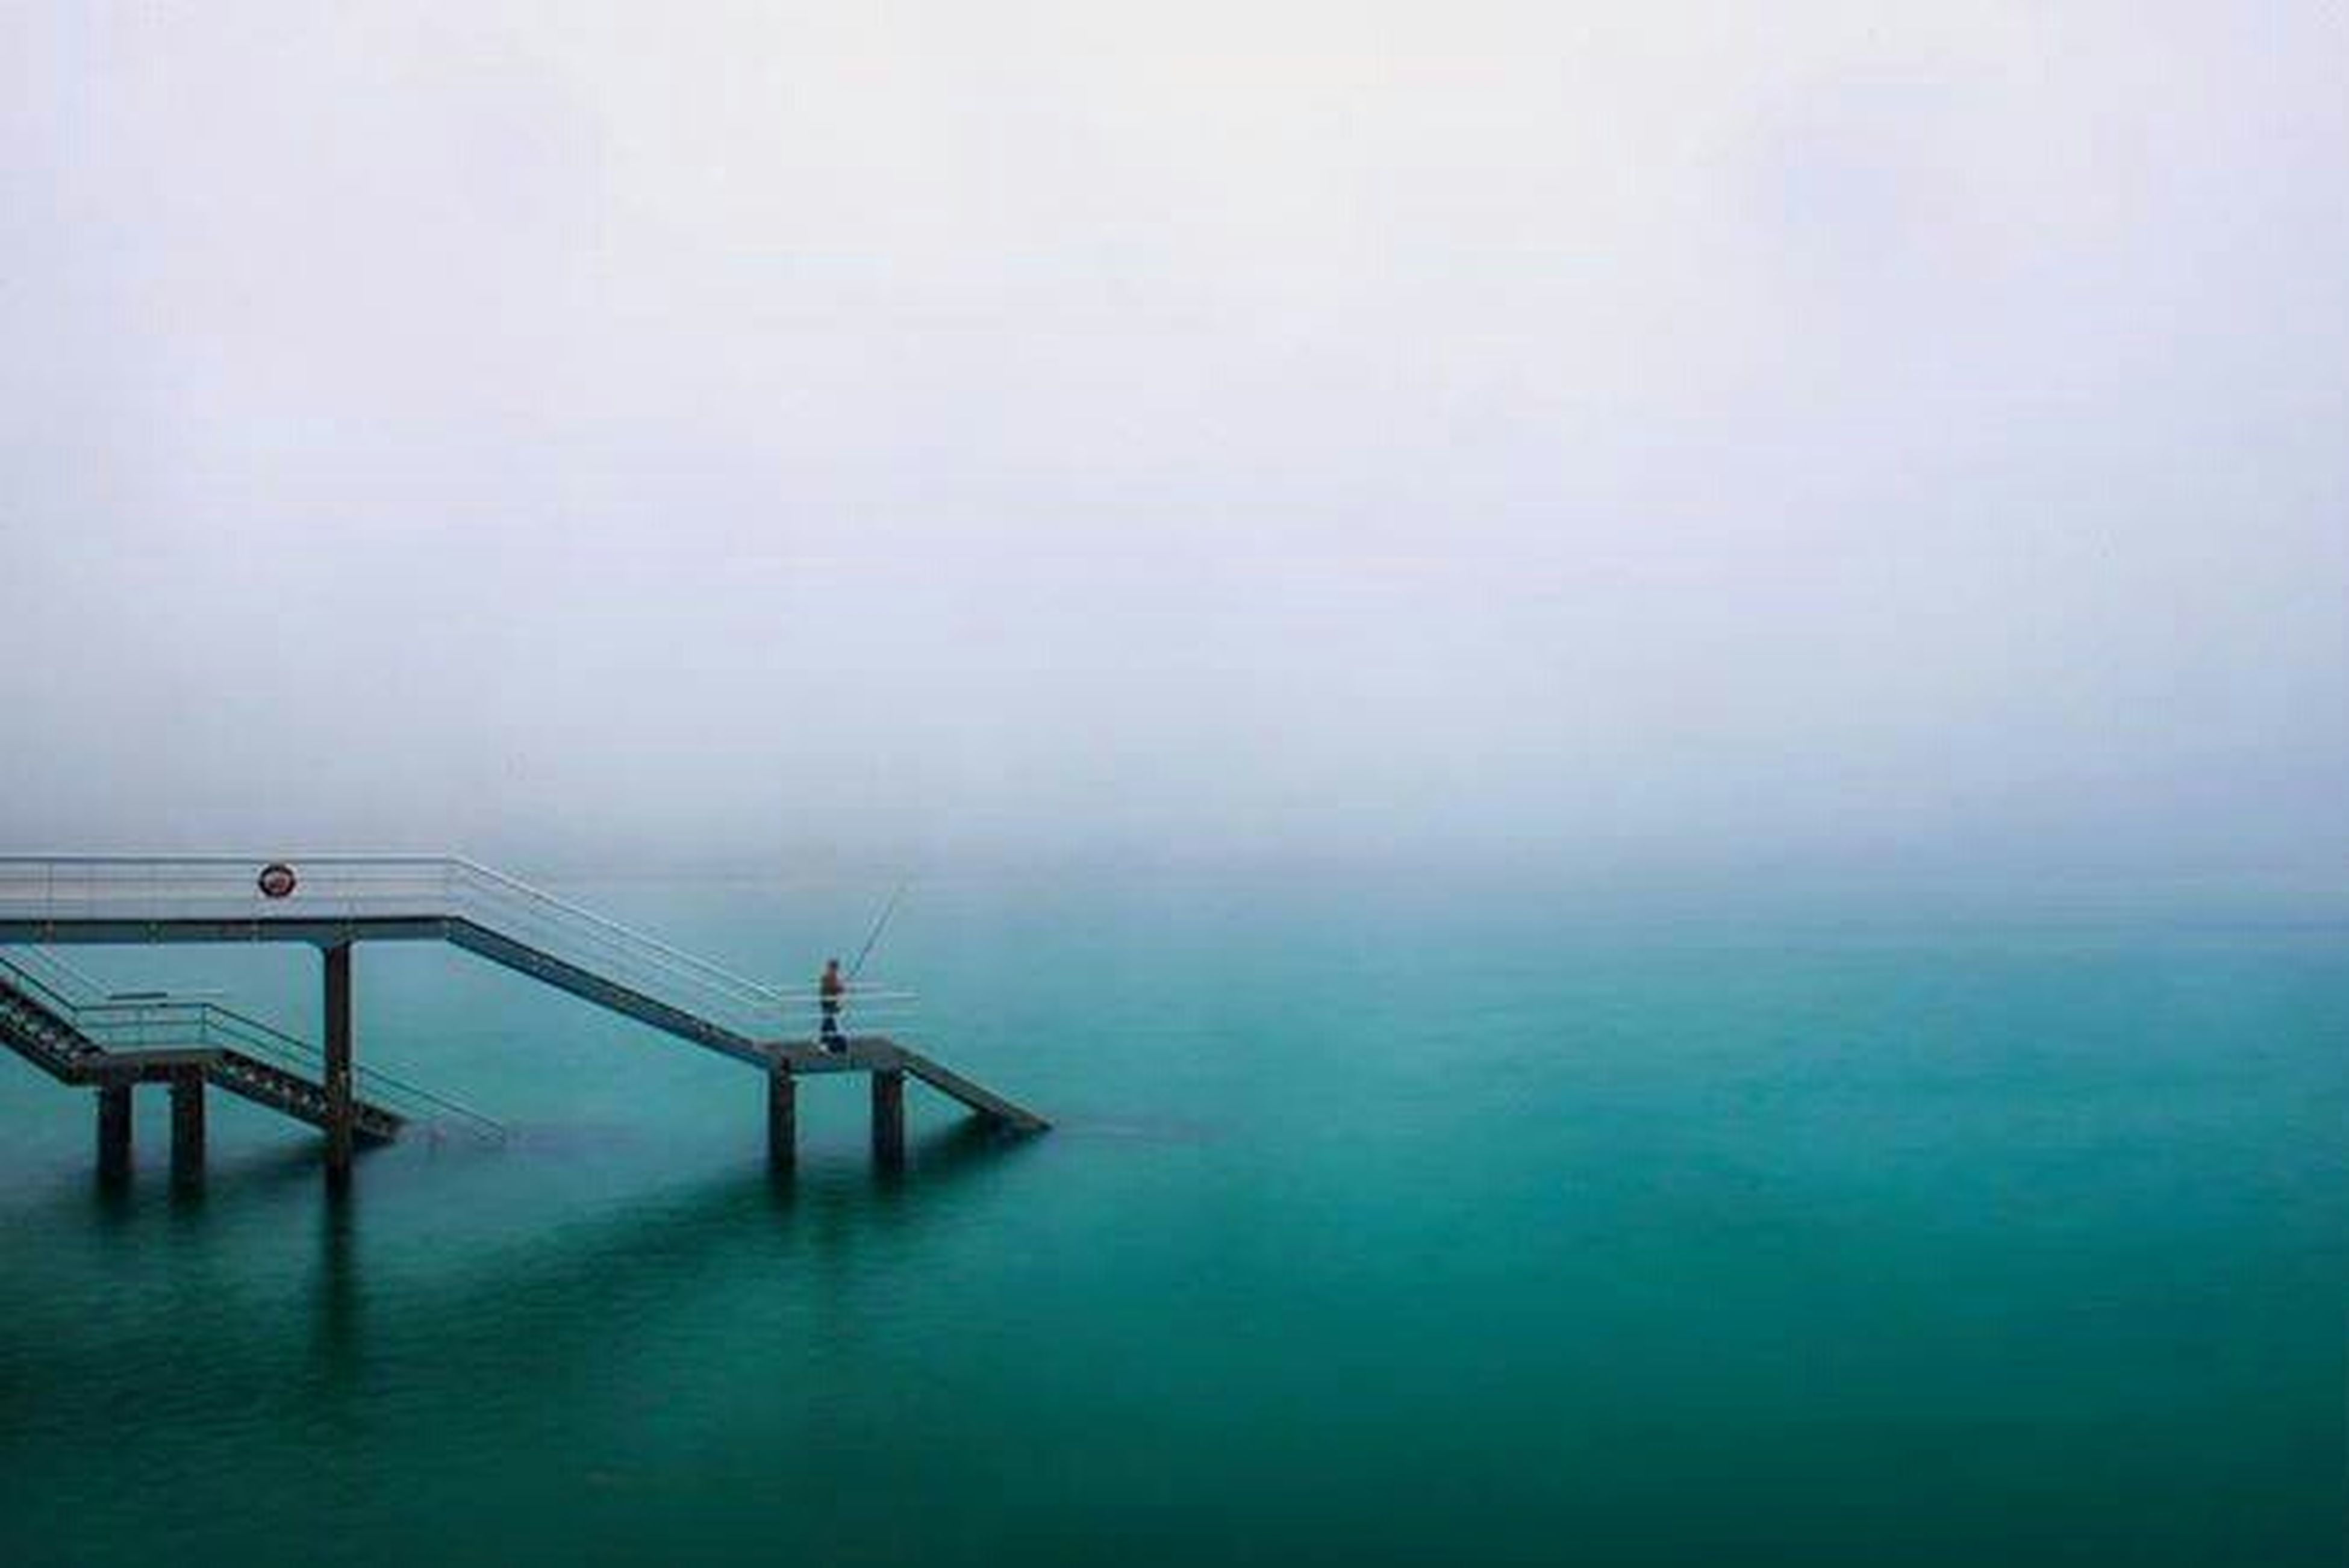 sea, water, tranquil scene, tranquility, horizon over water, copy space, fog, waterfront, scenics, nature, sky, foggy, beauty in nature, built structure, pier, idyllic, calm, day, weather